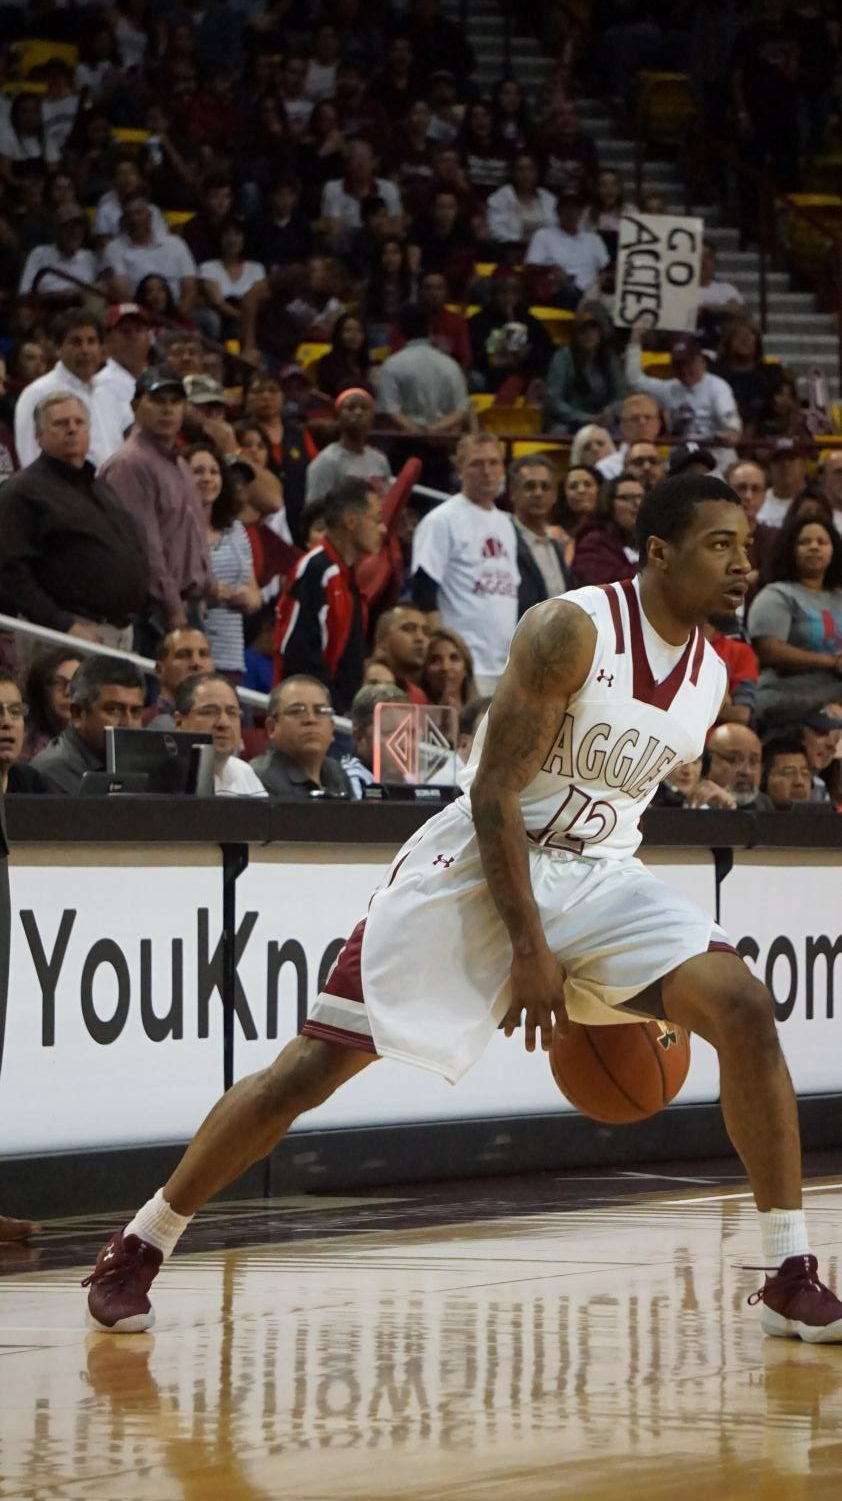 AJ Harris looks to make a play as the Aggies defeated their out of state rival 72-63.